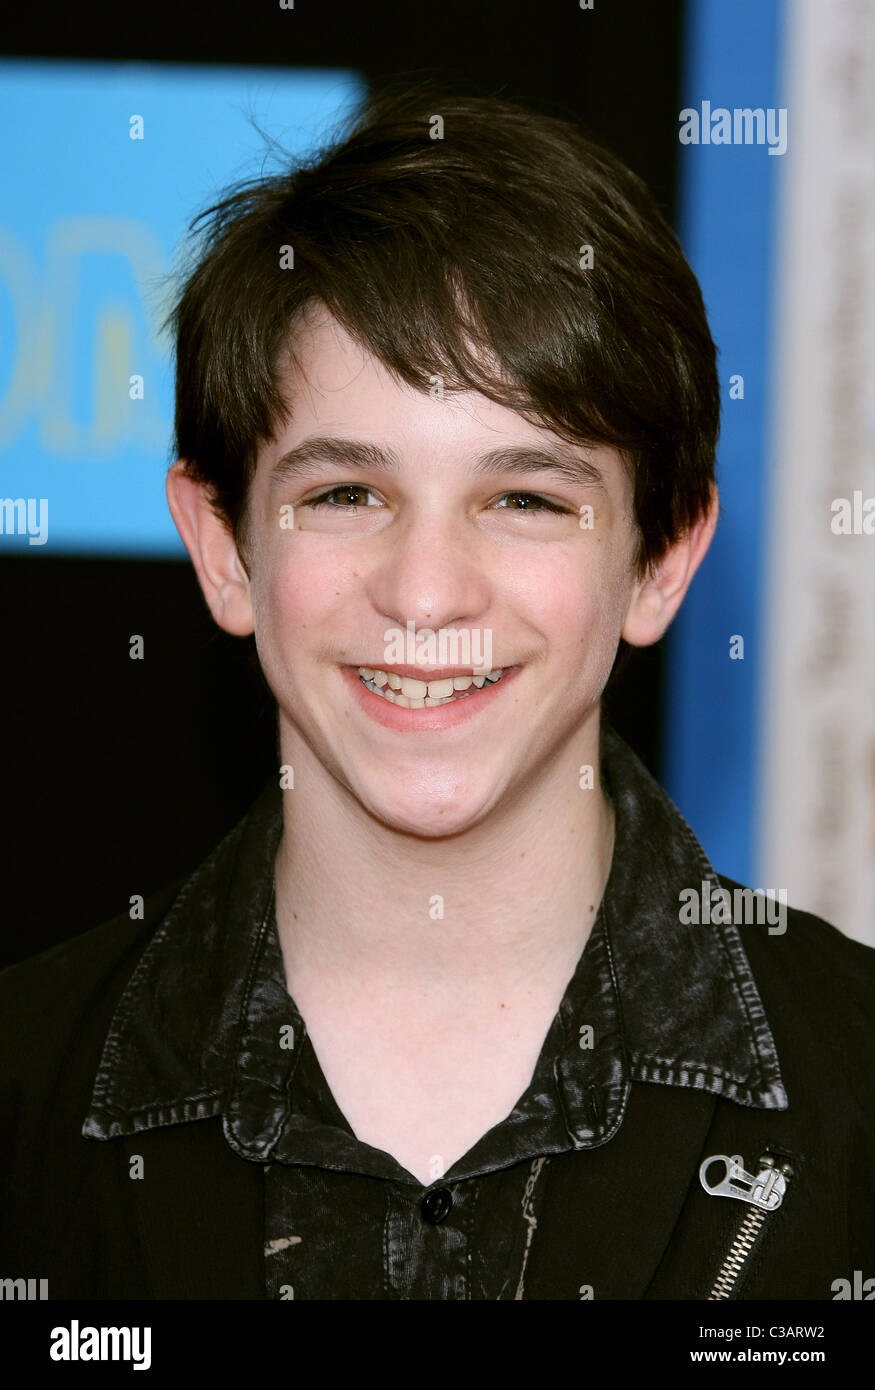 zachary gordon how i met your mother